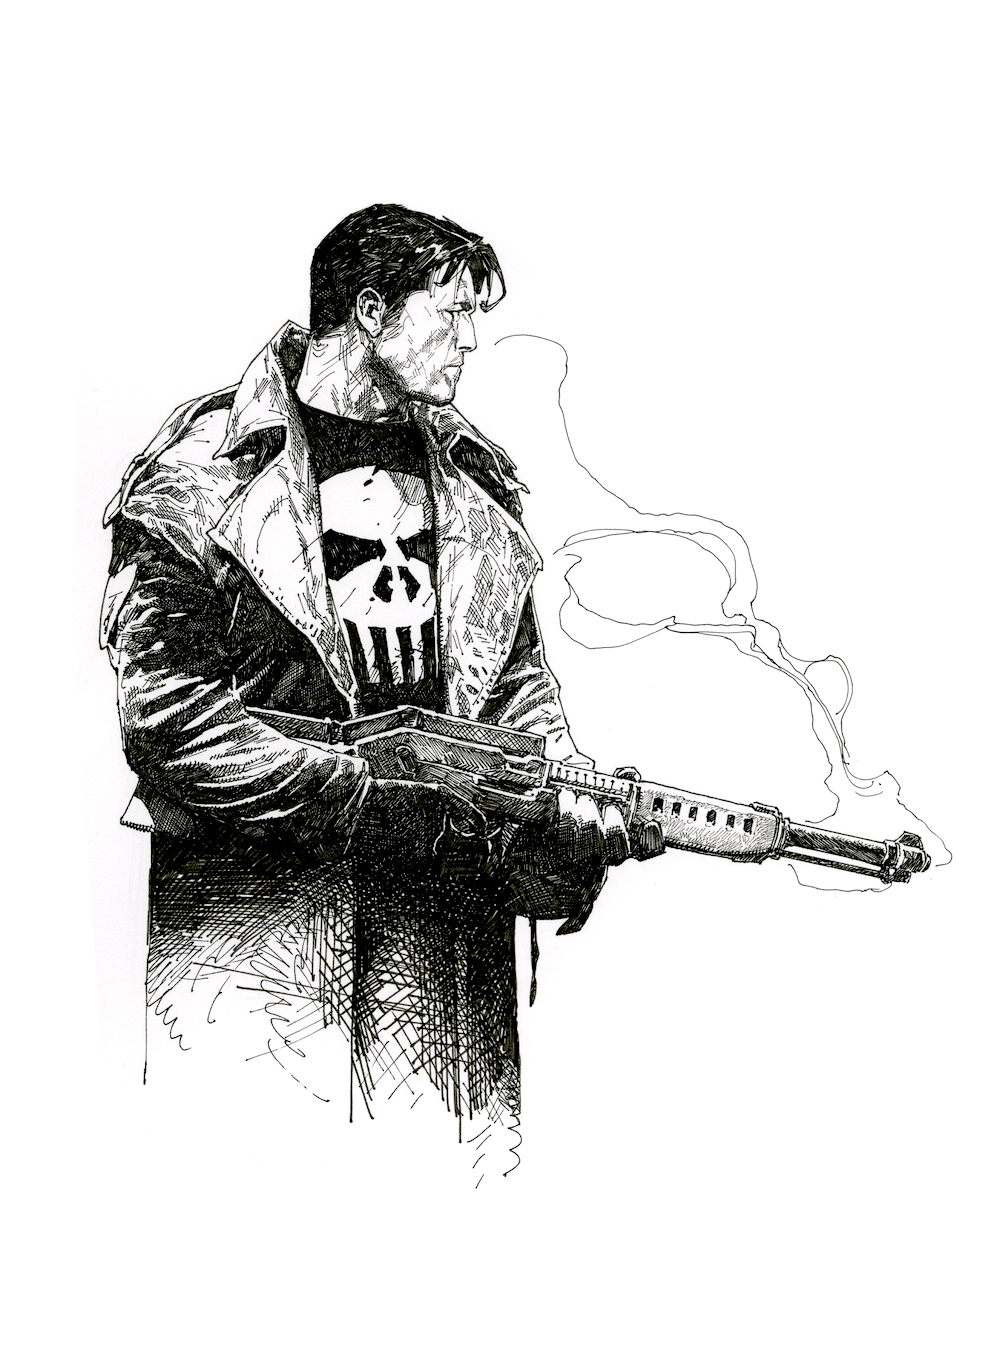 Punisher2.jpg